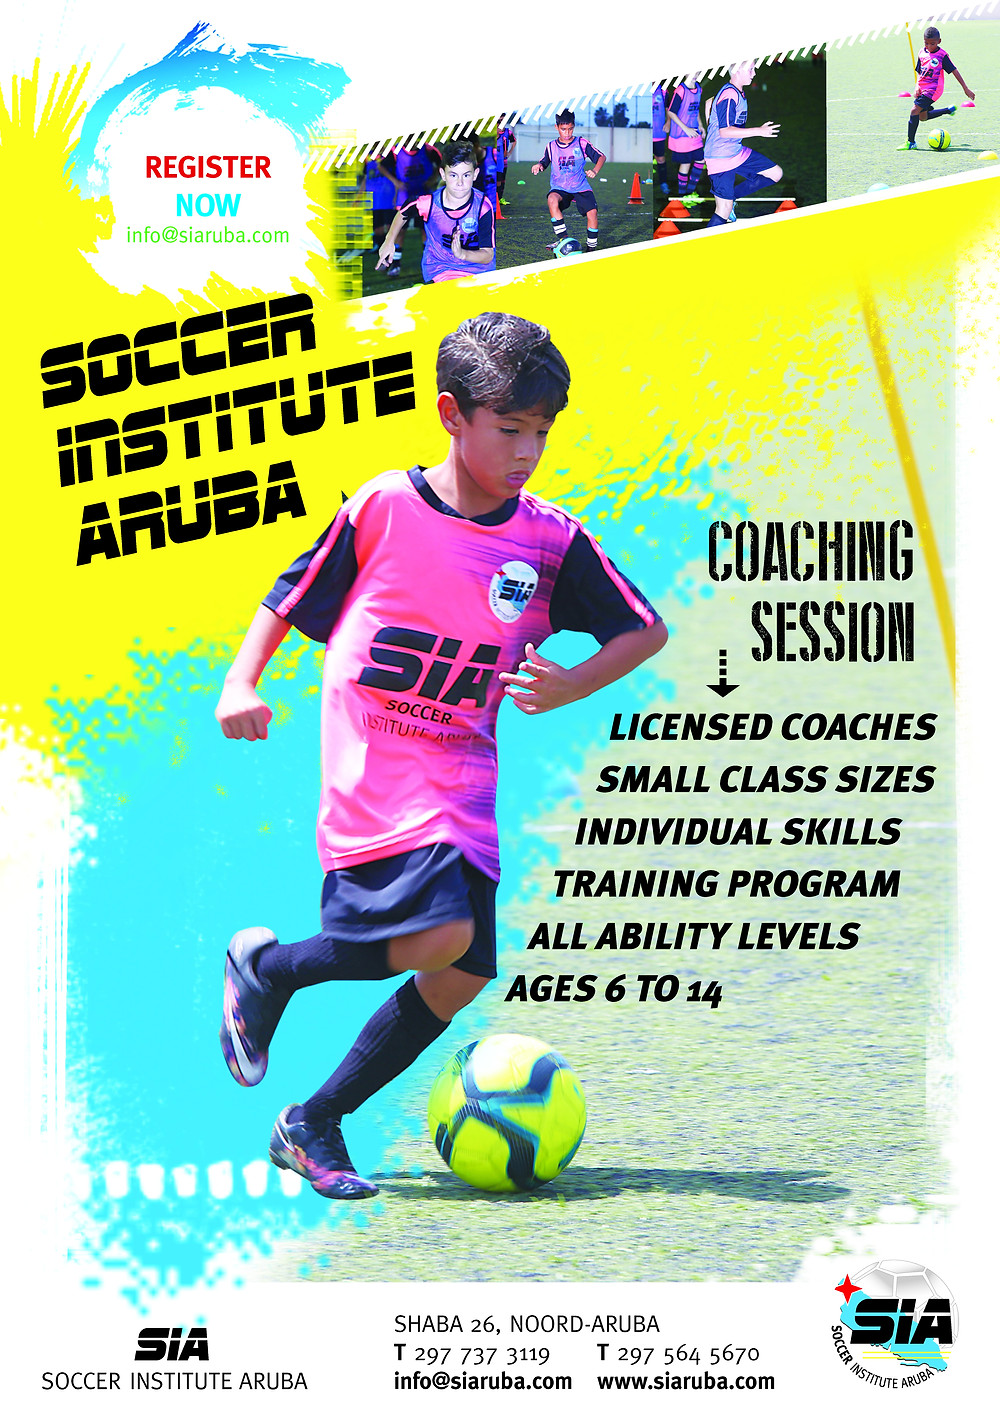 Soccer Institute Aruba (SIA) is a soccer technique school founded in Aruba in 2015 by a group of professionals with experience teaching this sport in the formative stages in Aruba and in the Netherlands.     The Soccer Institute Aruba (SIA) has highly qualified technical staff with international training experience. SIA focuses on improving the technical skills of children between the ages of 6-14 by providing training in addition to the regular workouts offered to children by their respective soccer clubs. Training takes place in groups consisting of a maximum of ten players based on their technical skills. SIA uses different ways of teaching in order to achieve the maximum learning experience for each player.